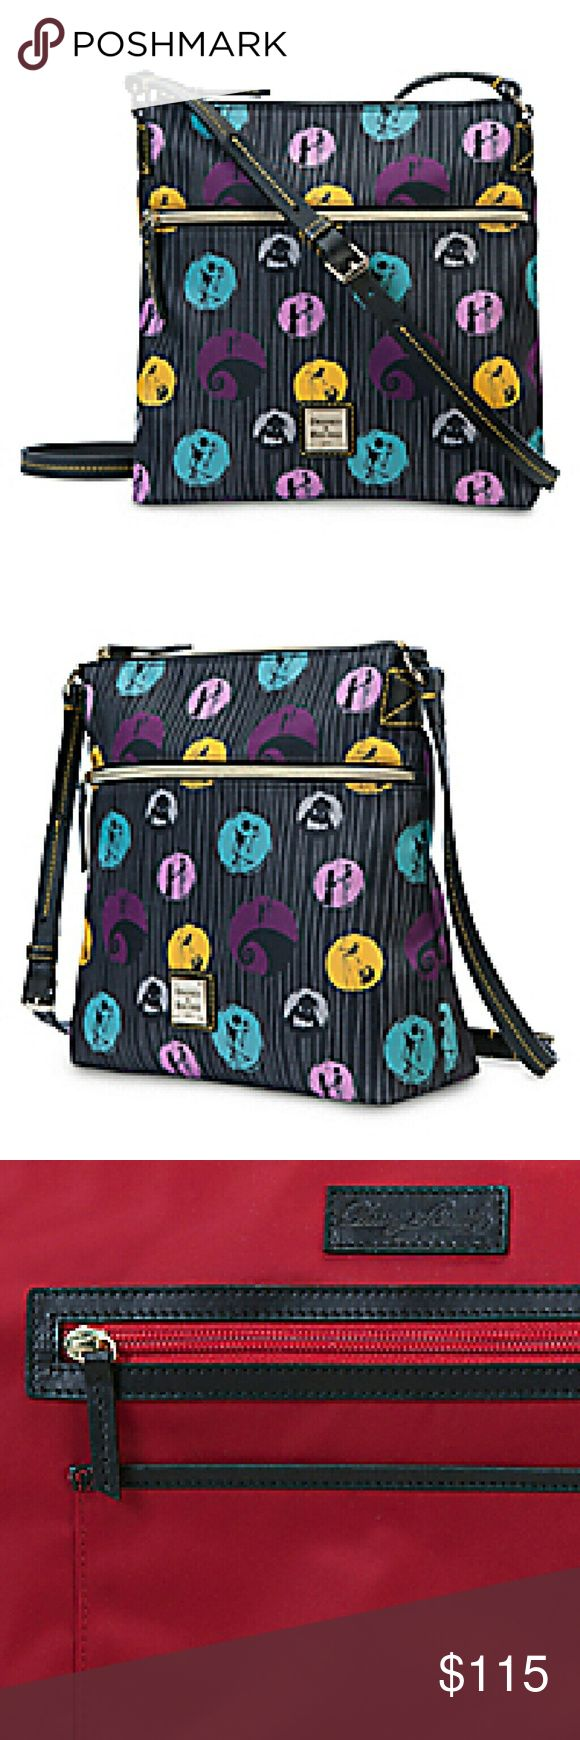 Nwt Nightmare Before Christmas Dooney Bourke purse This is a new Tim Burton's The Nightmare Before Christmas letter carrier by Dooney & Bourke crossbody purse. Dooney & Bourke Bags Crossbody Bags